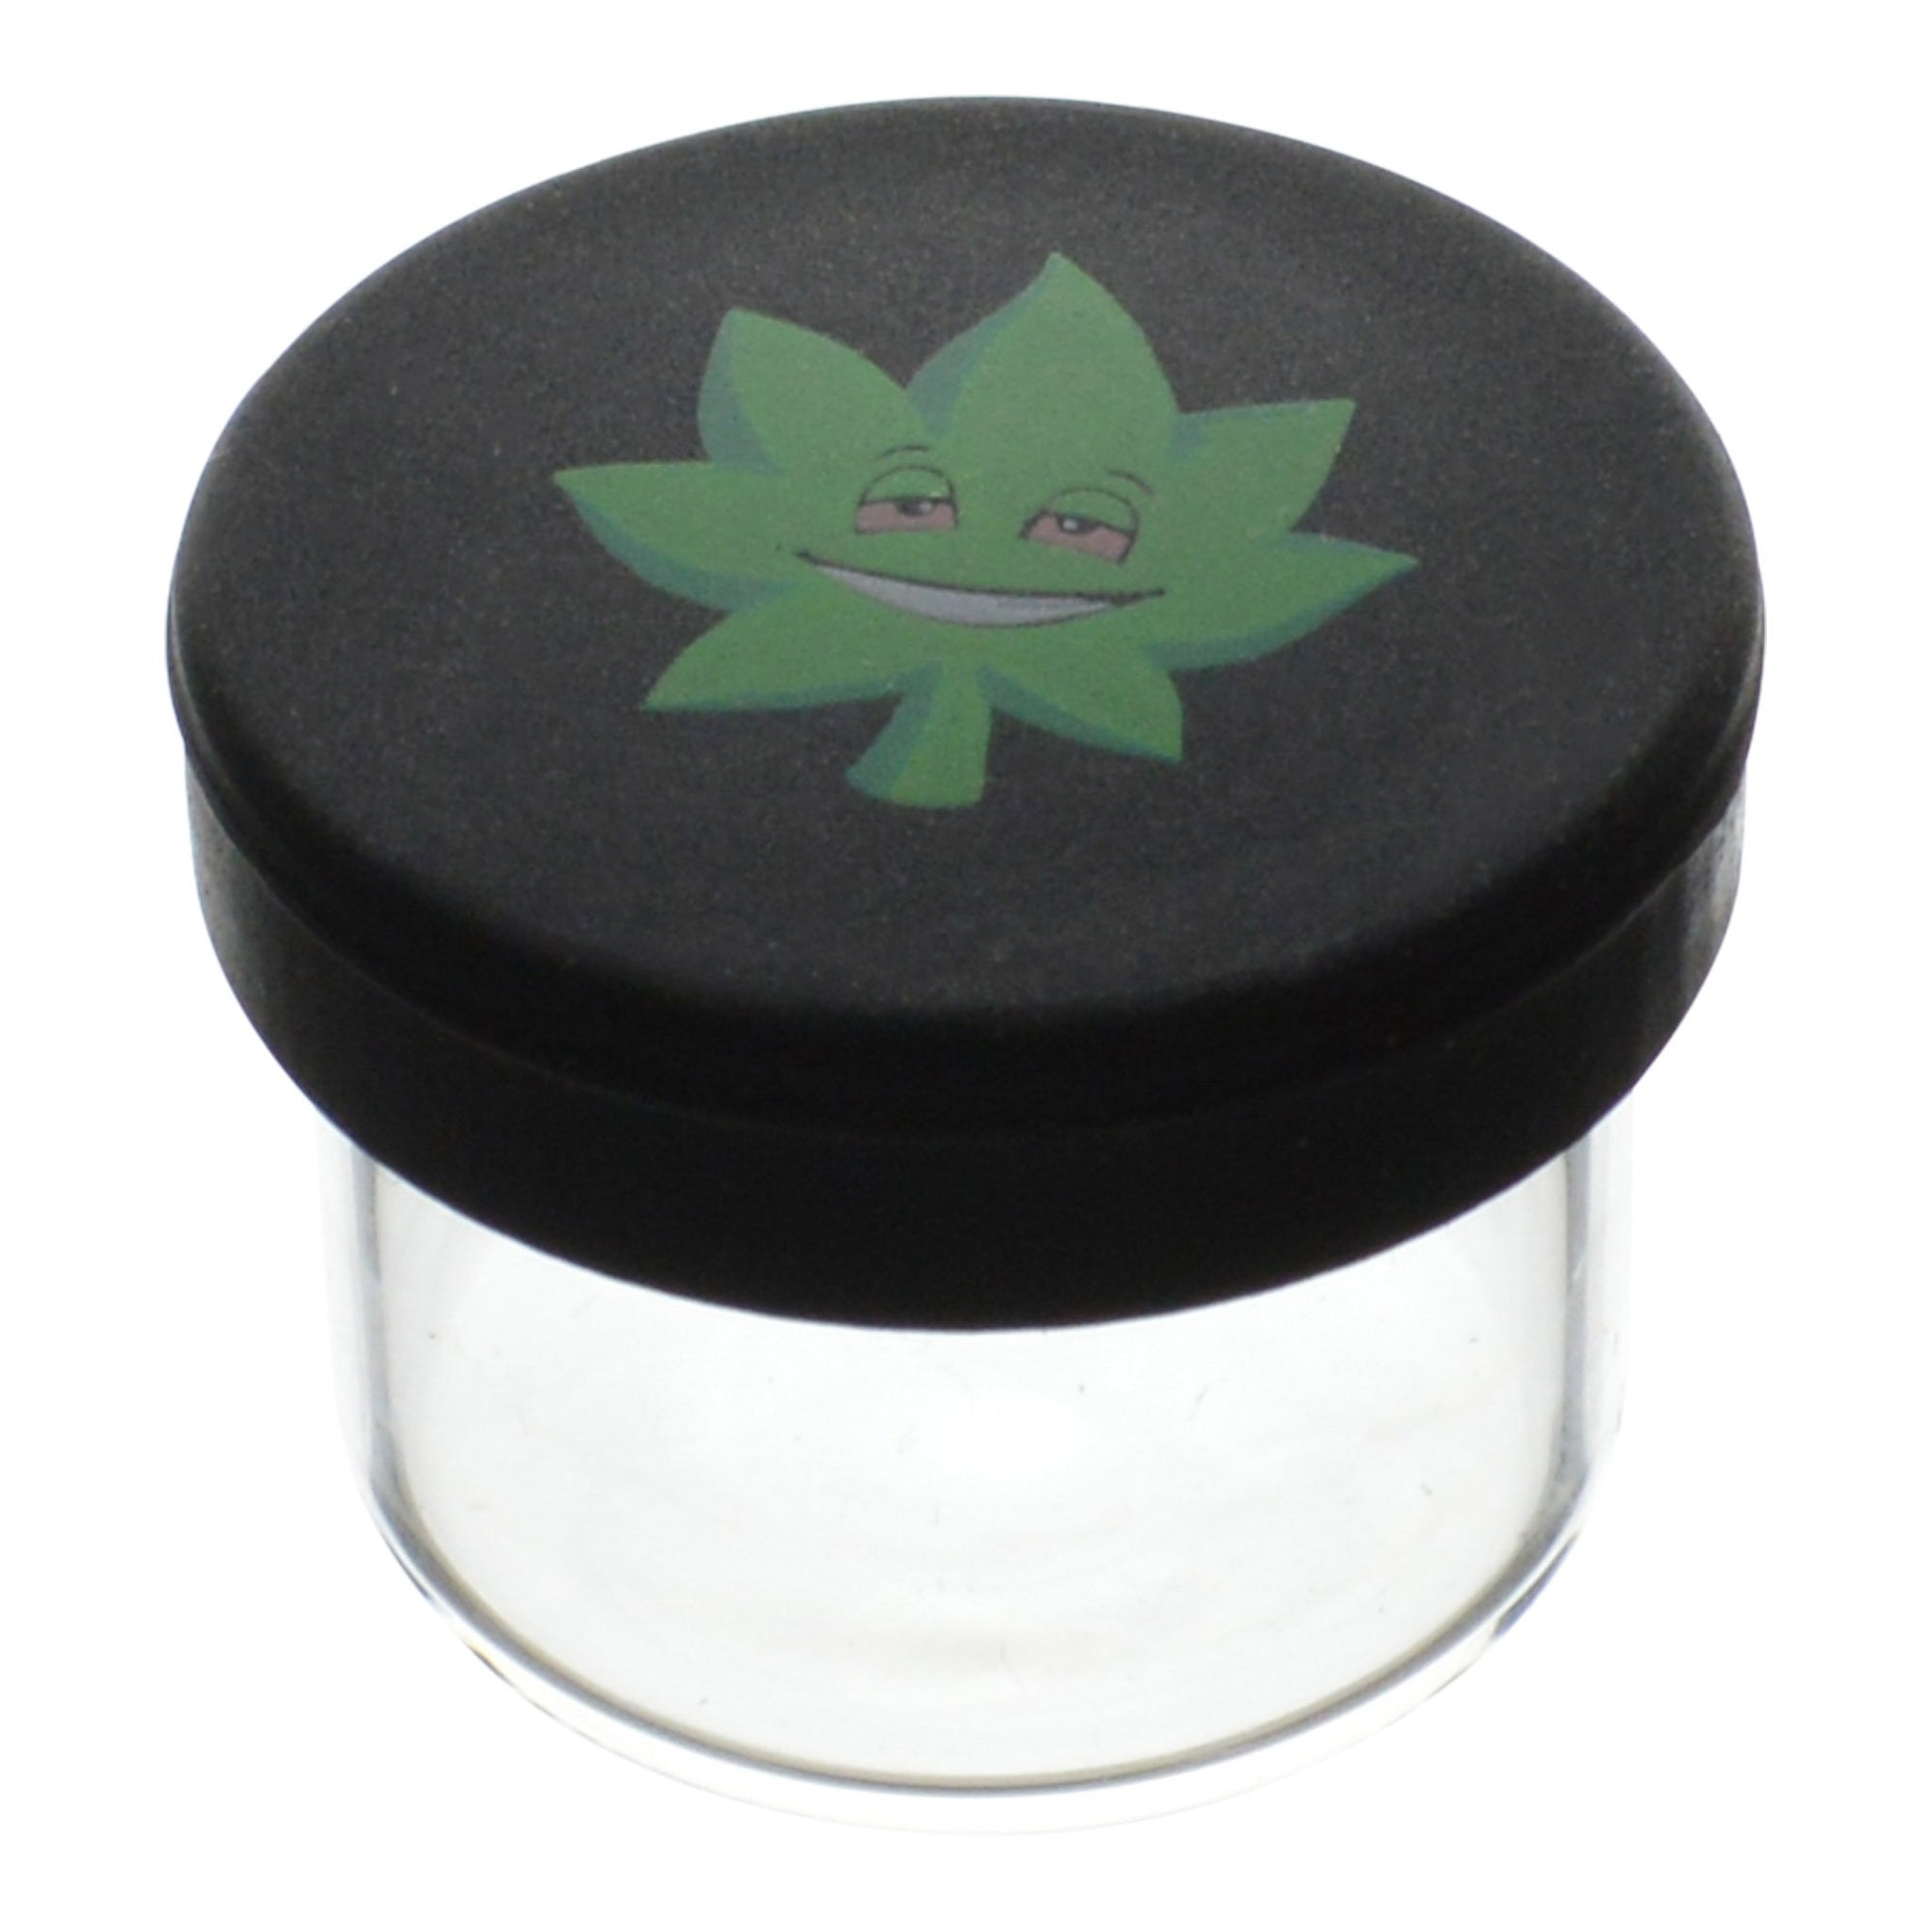 High angle shot 25 mm EF420 mini glass wax container with oversized black lid green weed leaf with getting high smiling face